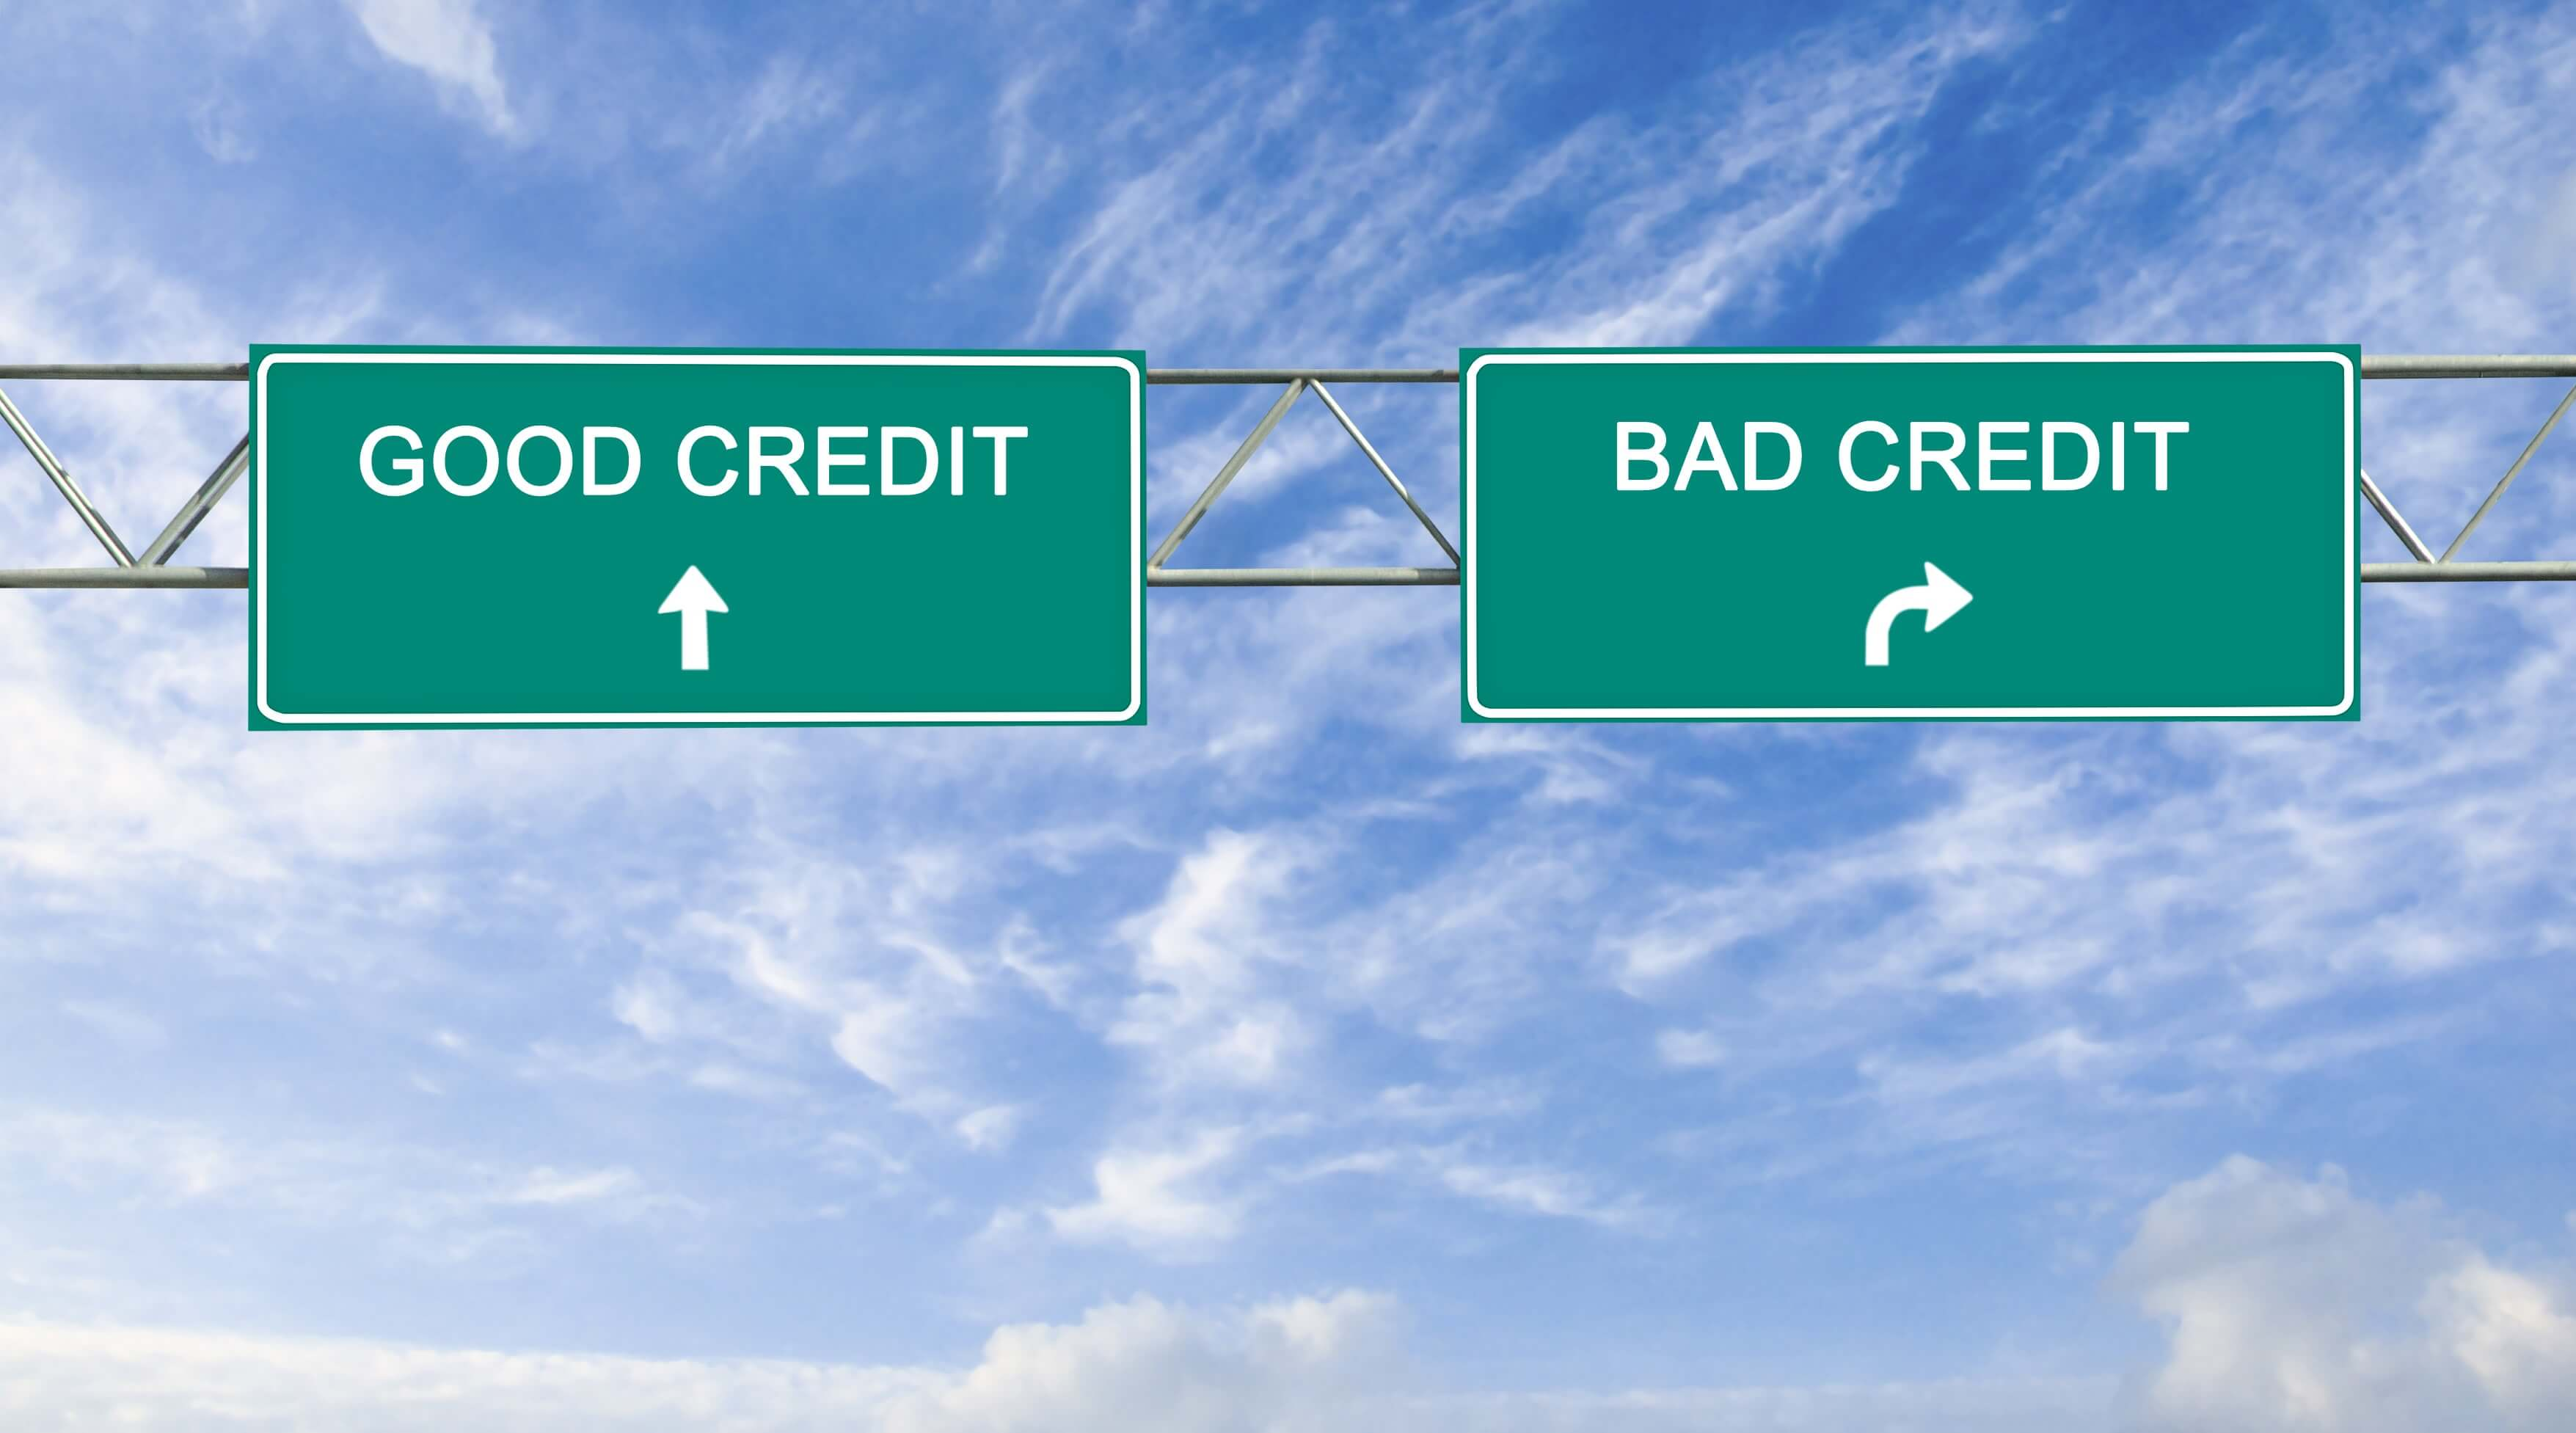 Picture of two highway signs showing the words good credit and bad credit